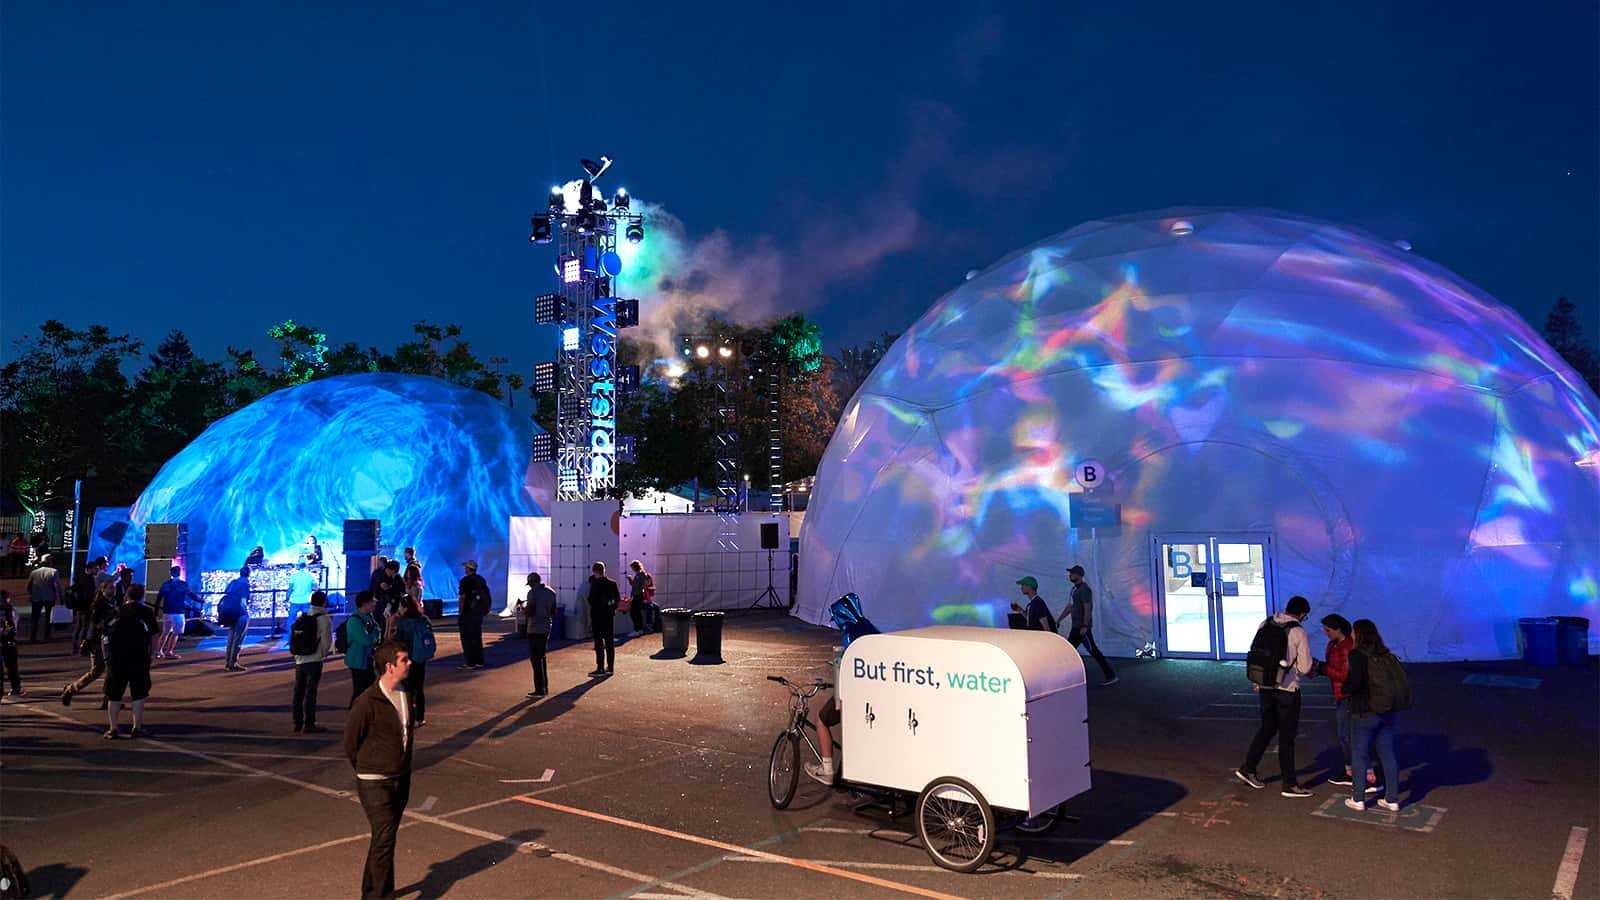 Geodesic dome nighttime lighting at Google I/O 2018.